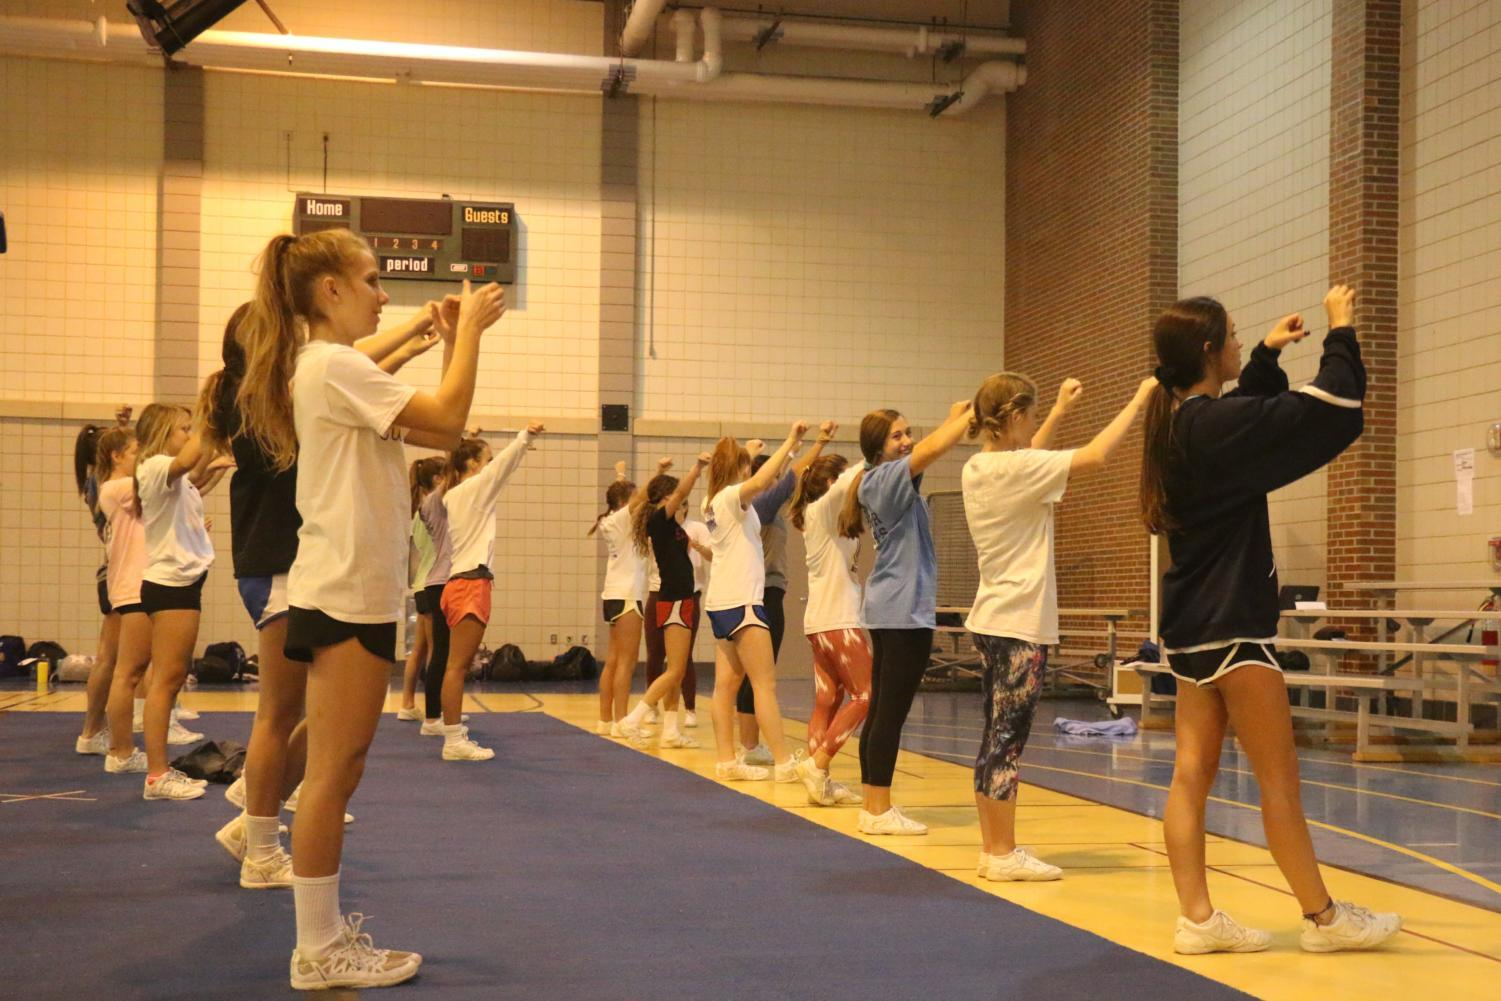 Winter Cheer team learns a new cheer during practice to perform during basketball games. The team practices several times a week in the field house to prepare themselves for games.